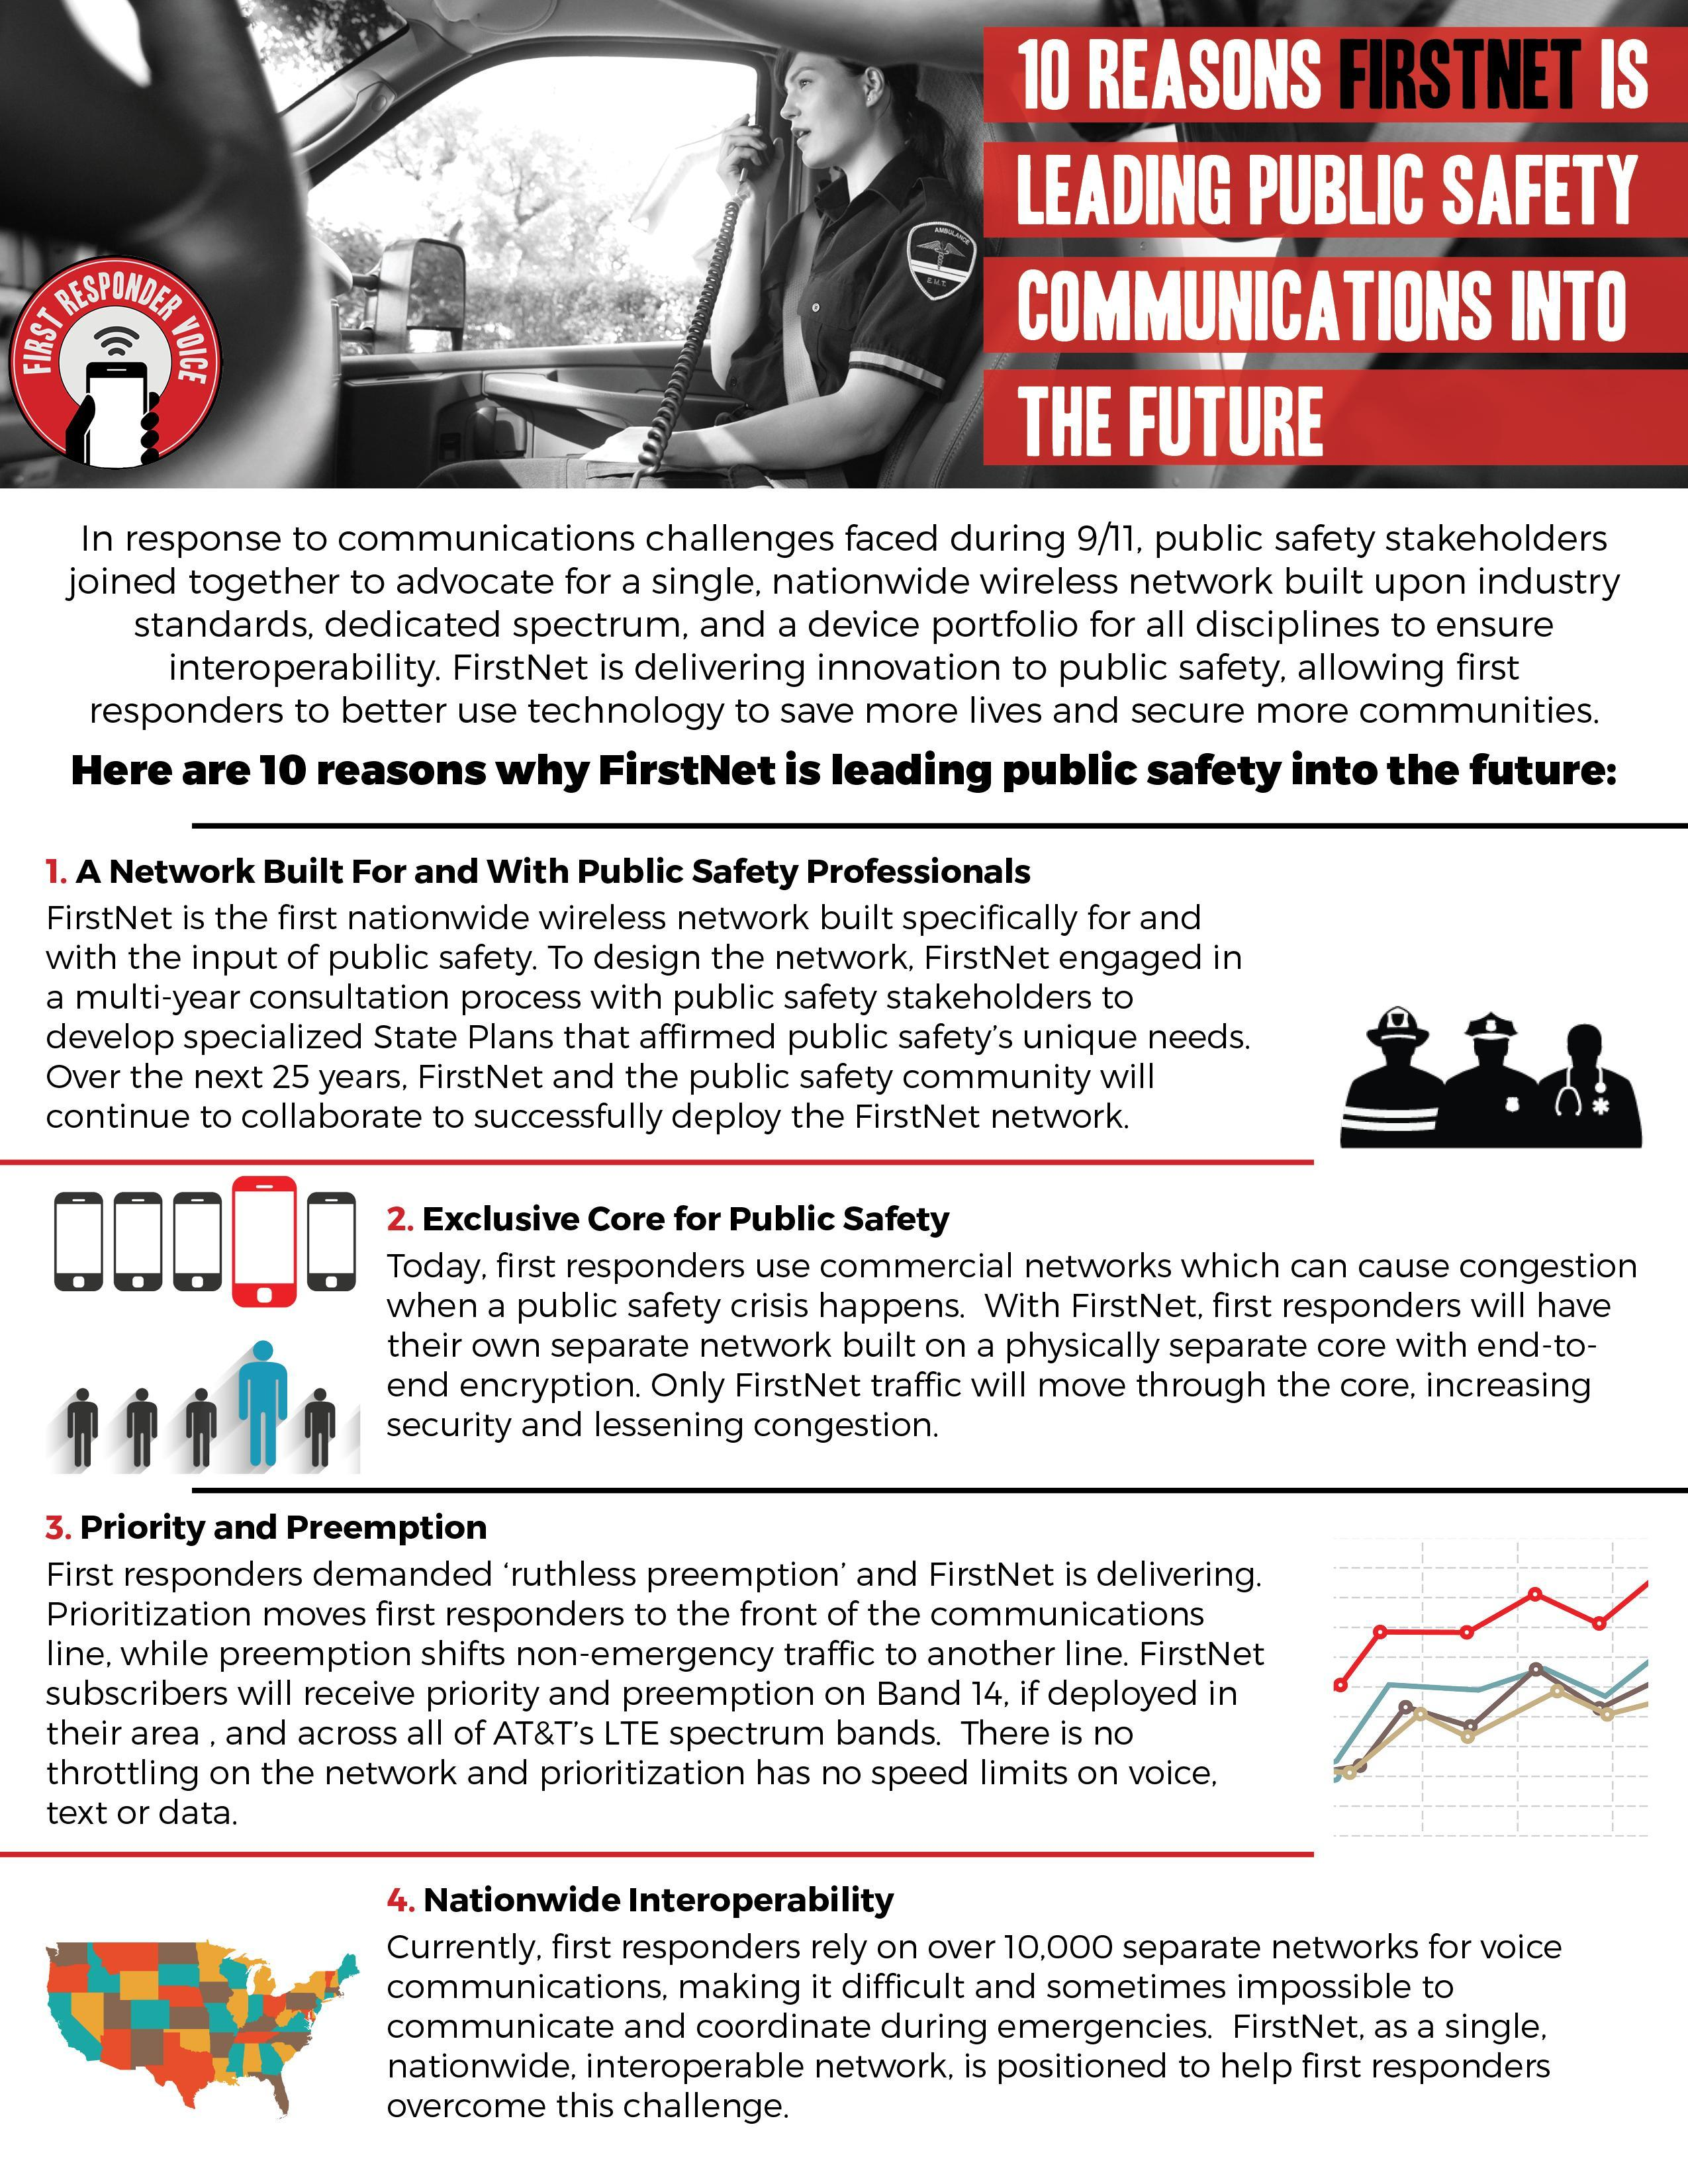 10 reasons why FirstNet is leading public safety into the future